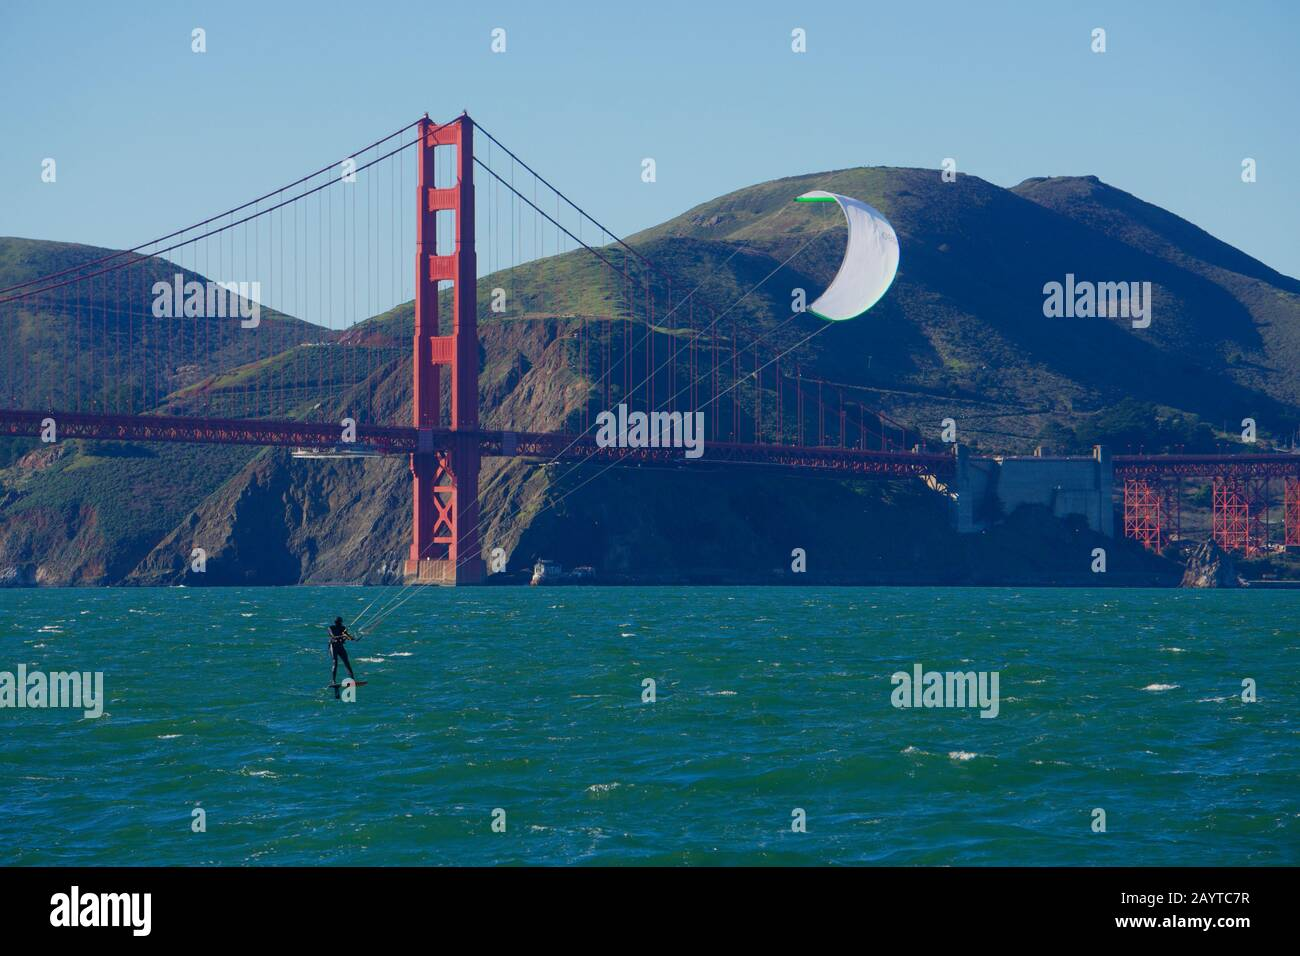 kite-surfer-or-kiteboarder-with-white-sail-on-a-windy-day-in-front-of-the-golden-gate-bridge-and-the-marin-headlands-san-francisco-bay-2AYTC7R.jpg